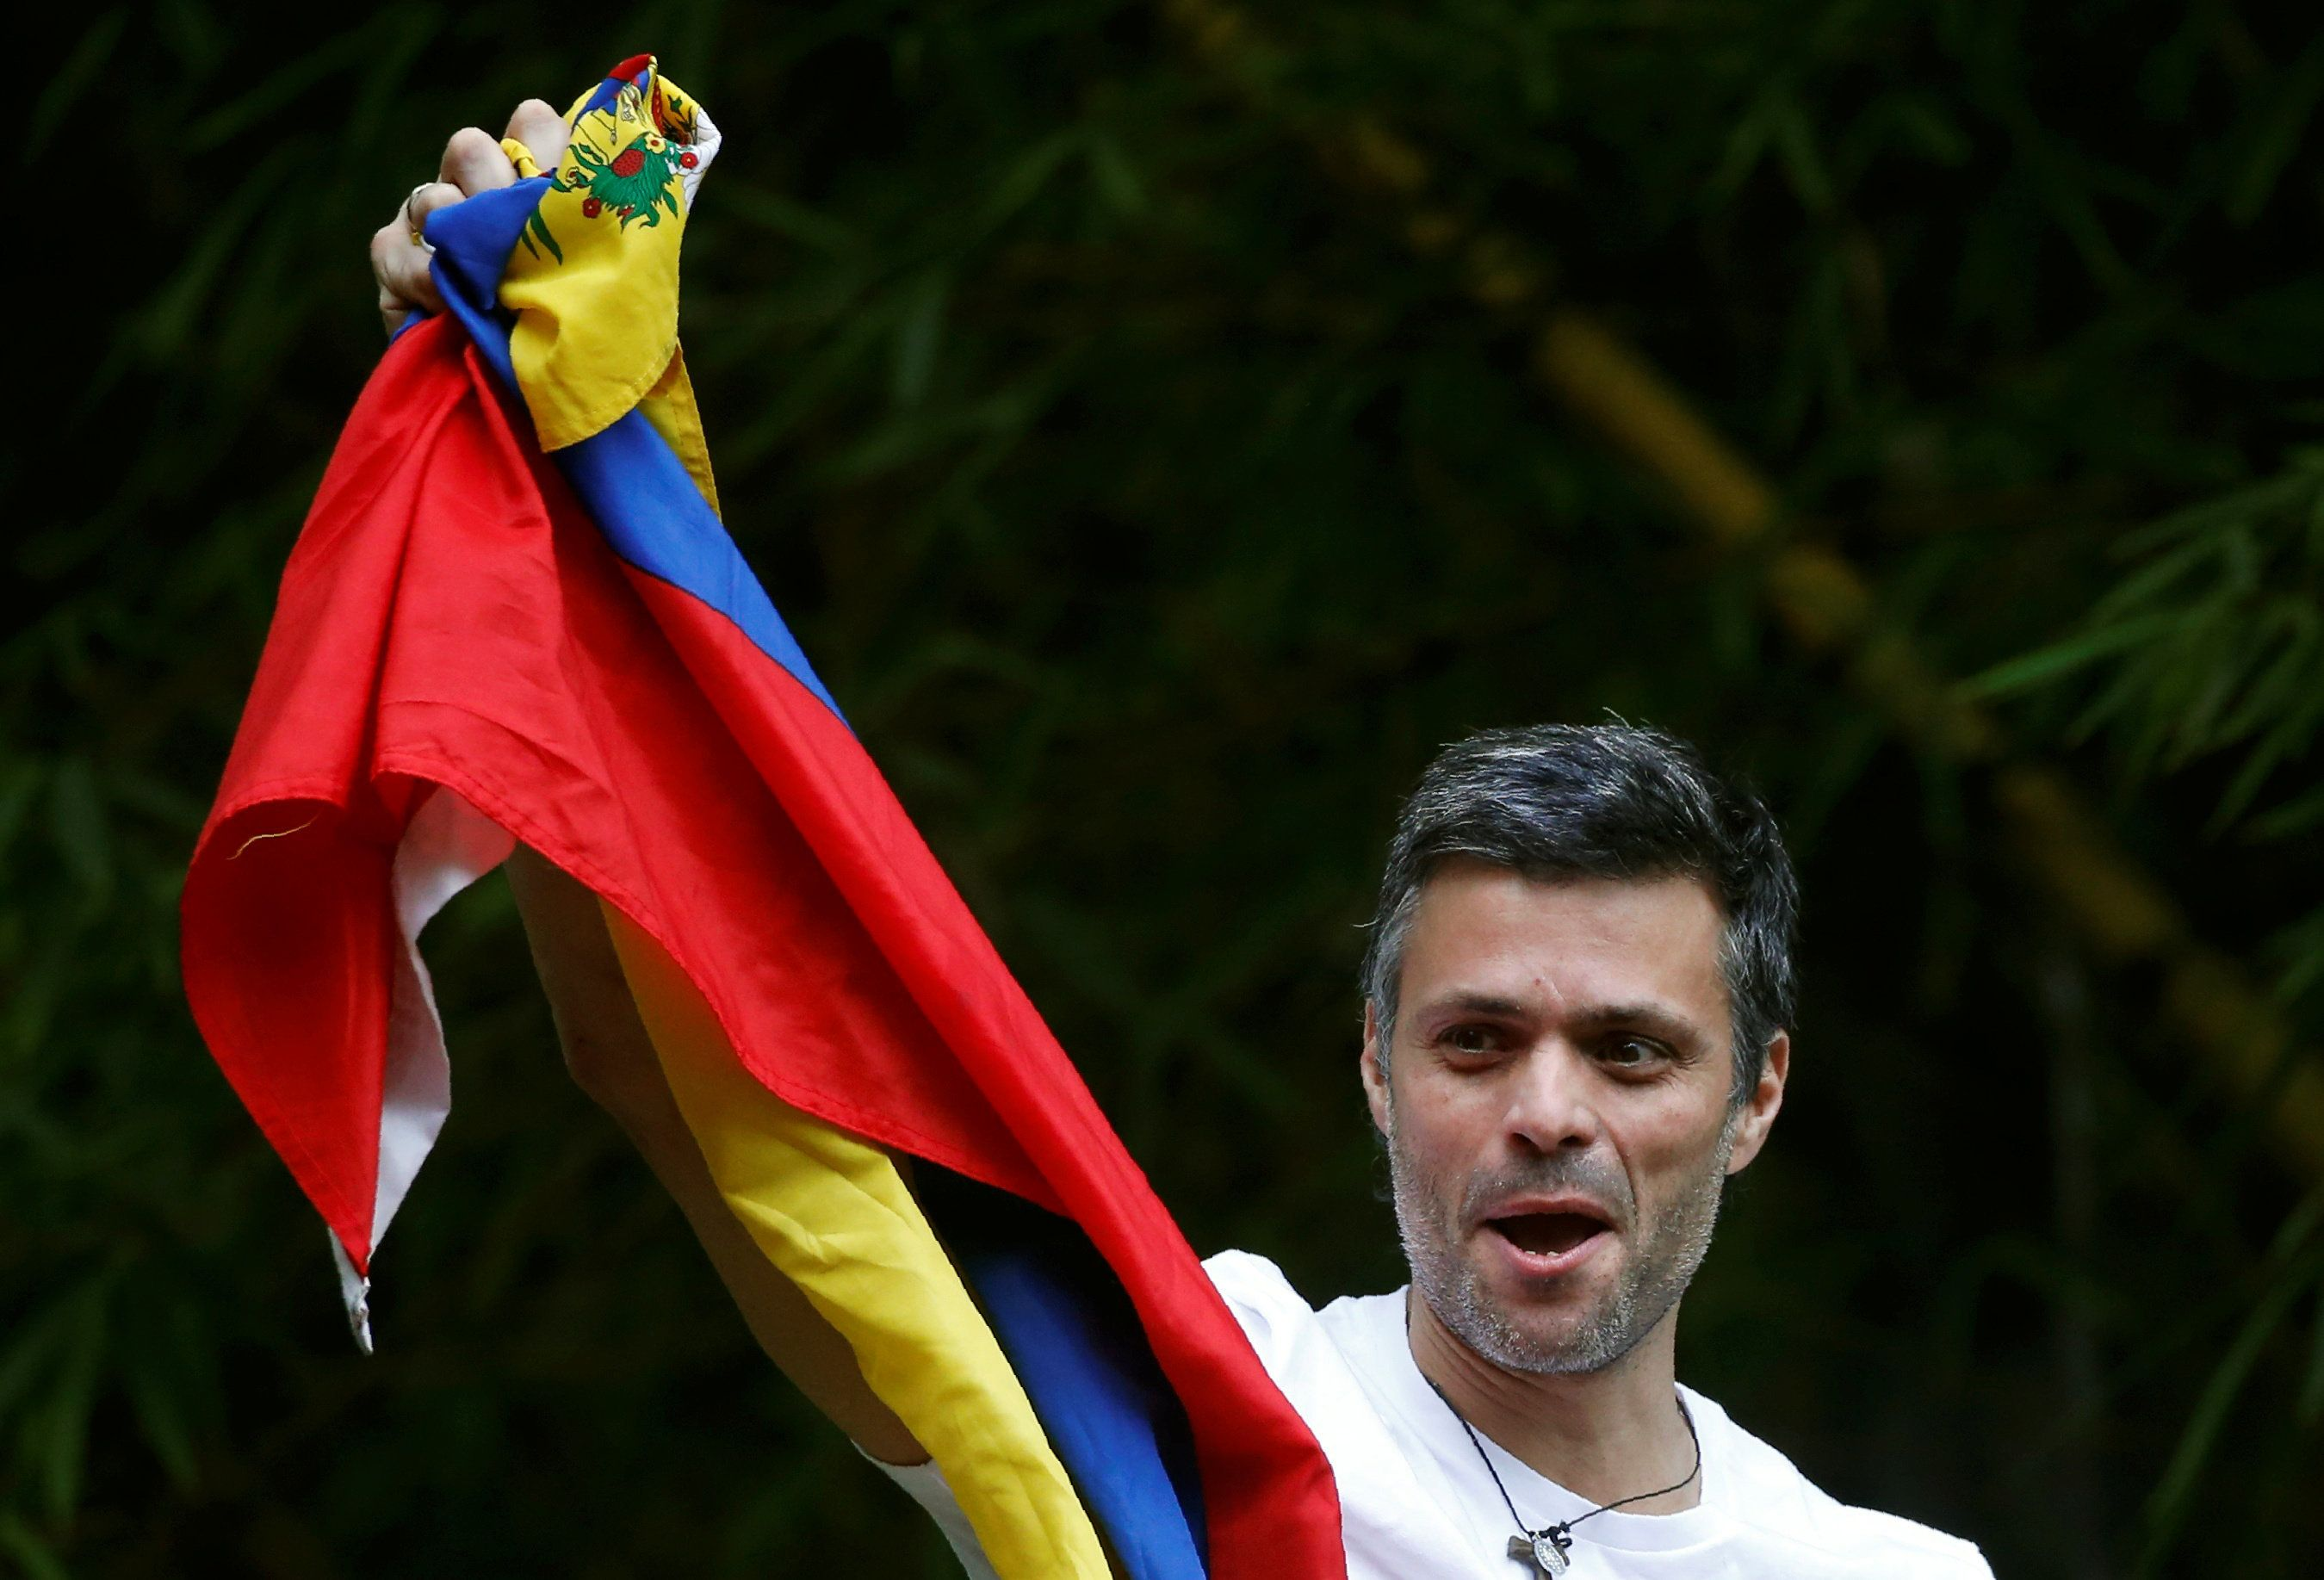 Venezuela's opposition leader Leopoldo Lopez, who has been granted house arrest after more than three years in jail, salutes supporters, in Caracas, Venezuela July 8, 2017. REUTERS/Andres Martinez Casares